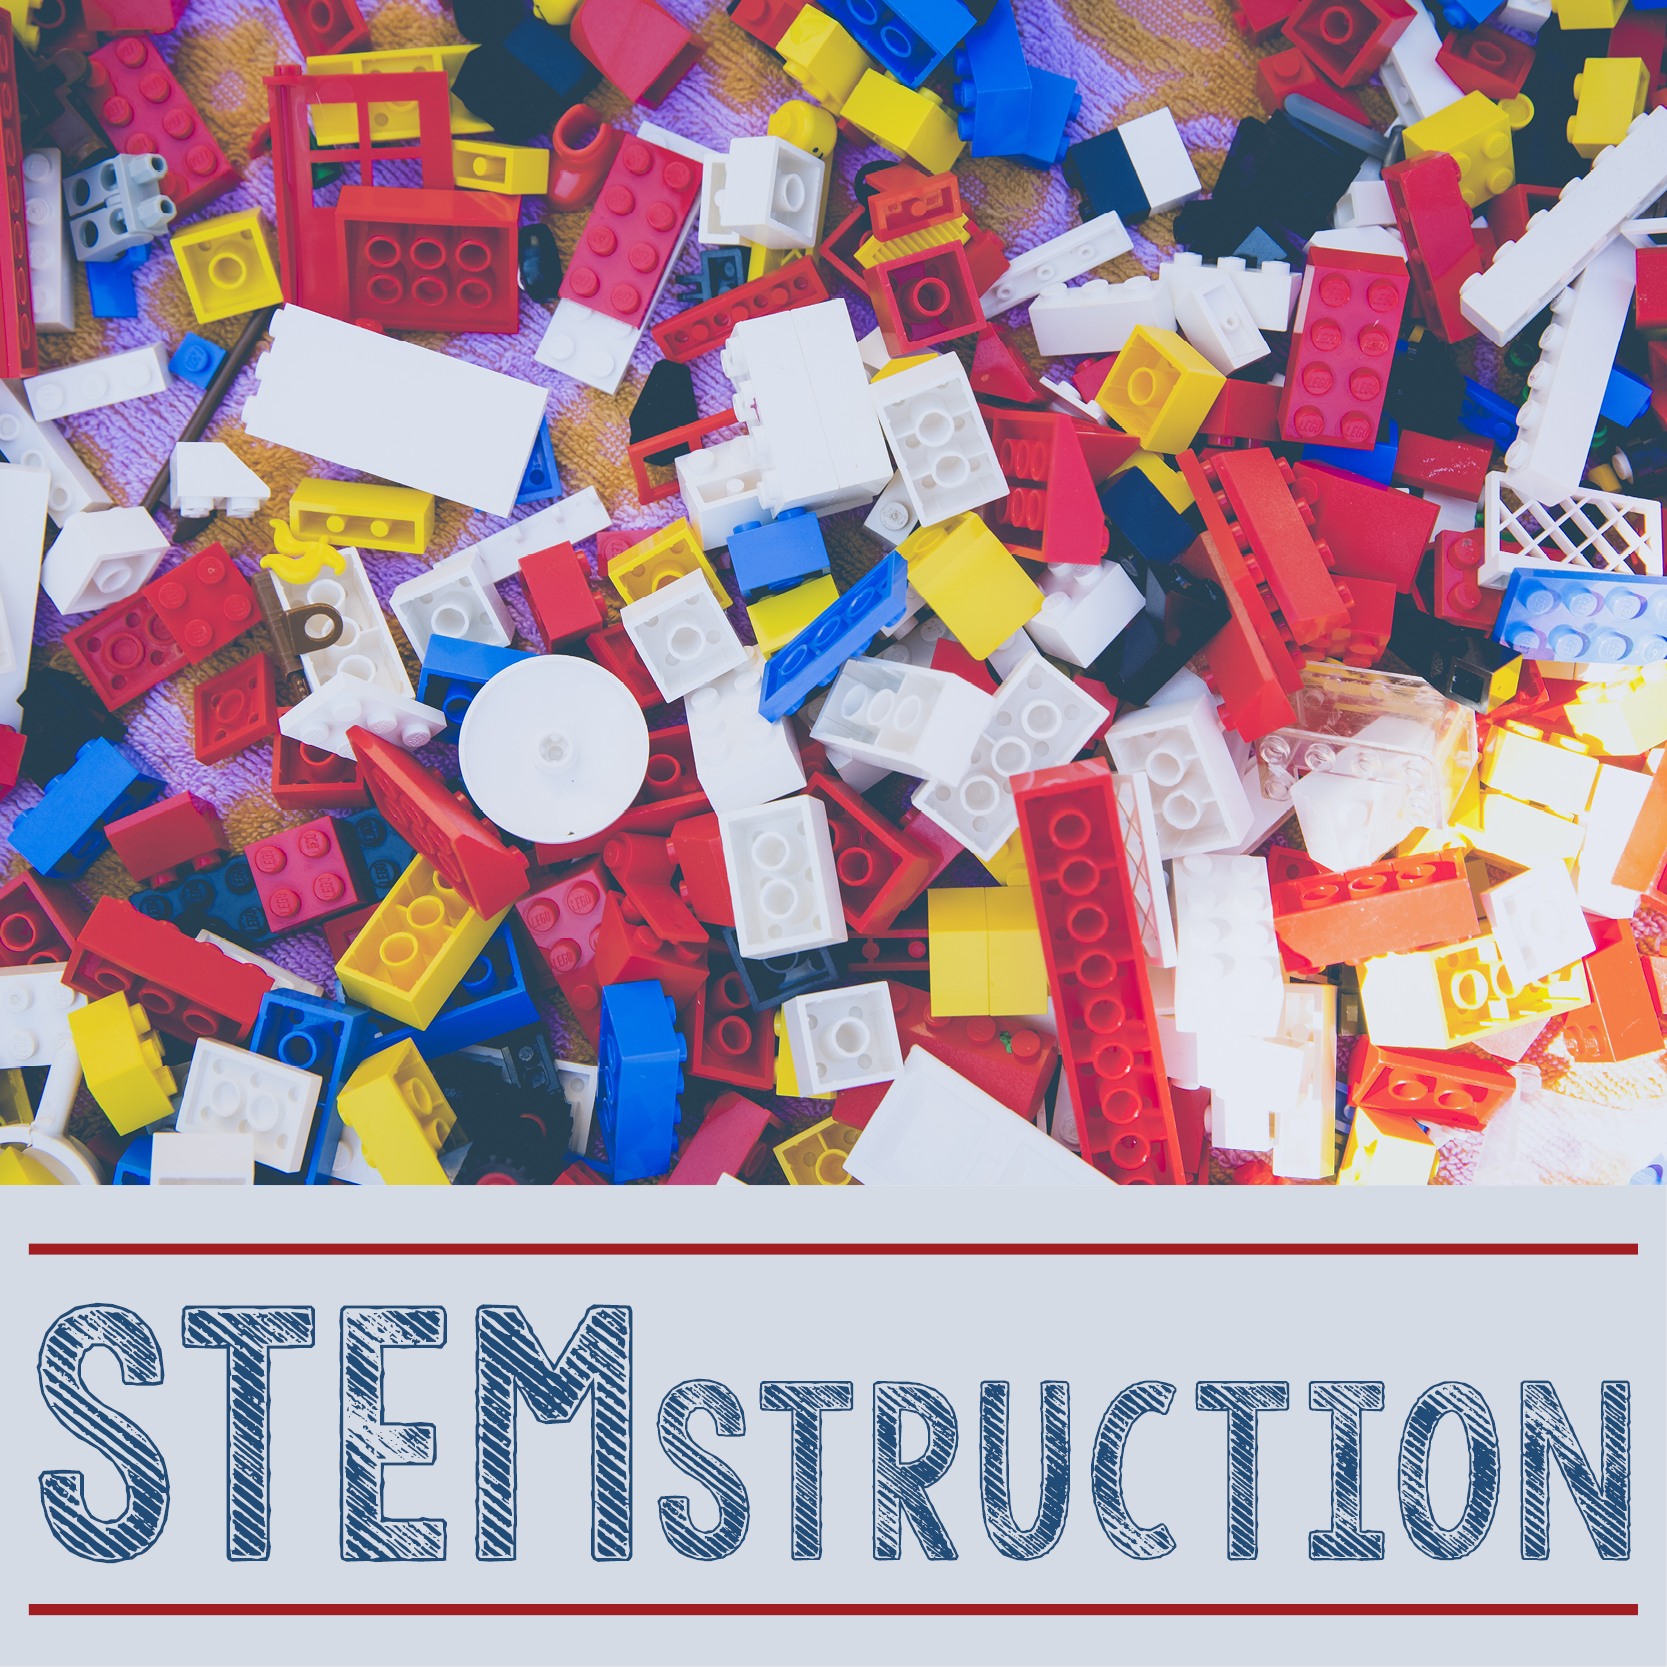 STEMstruction